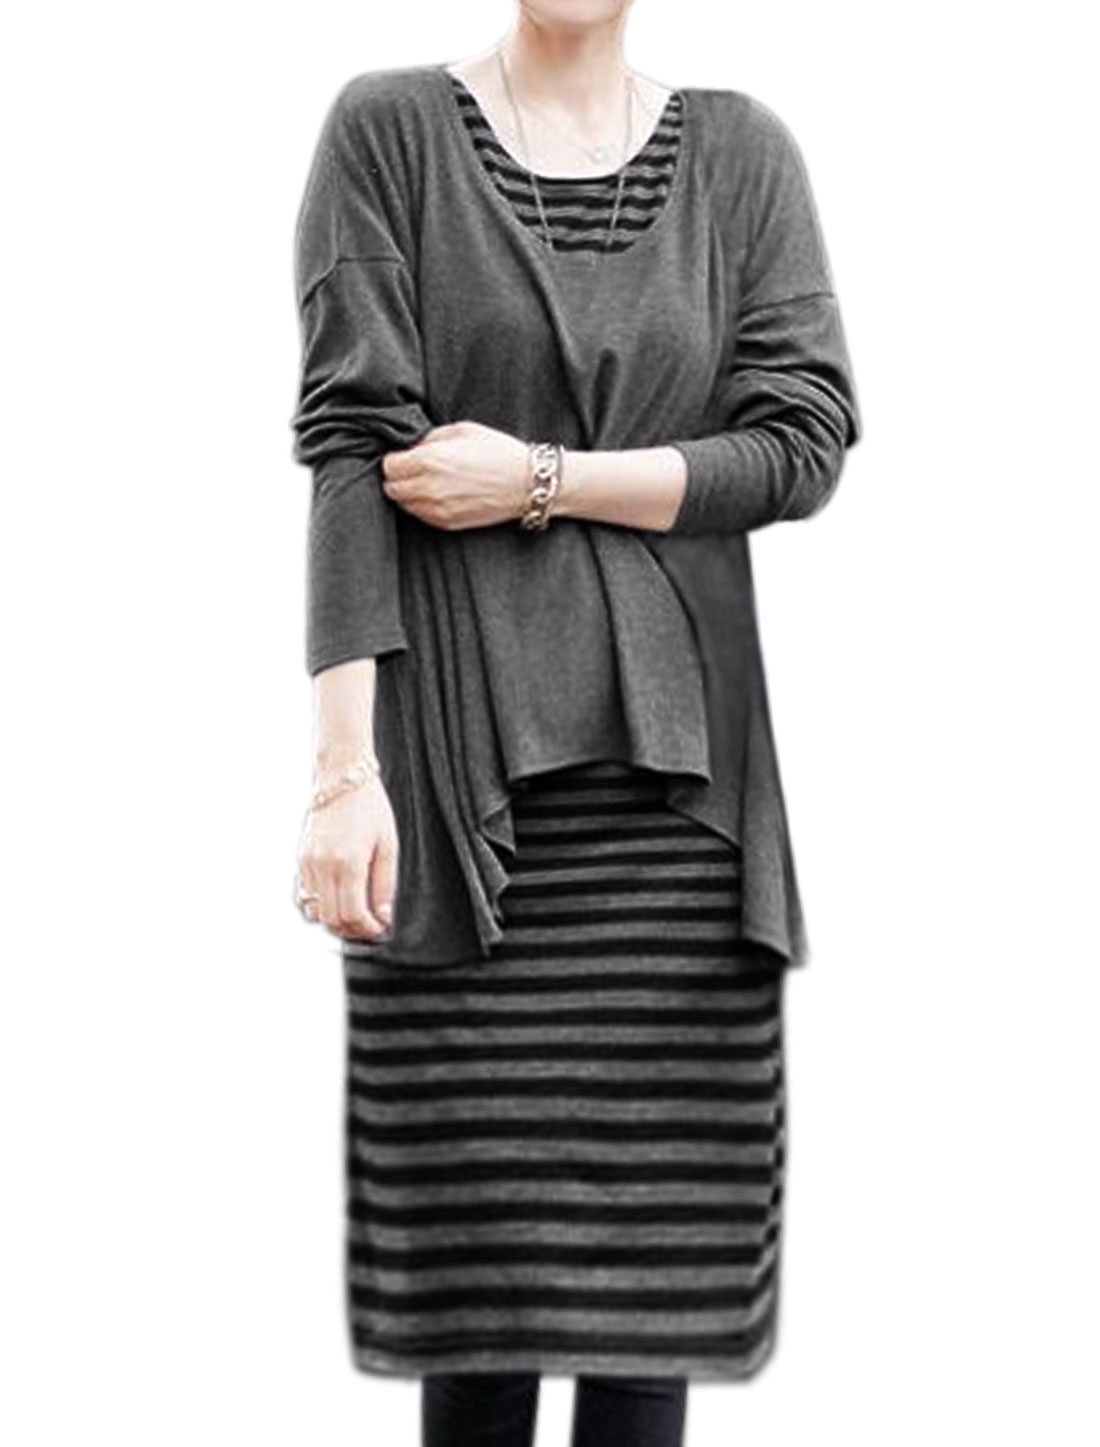 Women Long Dolman Sleeves High Low Hem Top w Stripes Shift Dress Sets Gray S